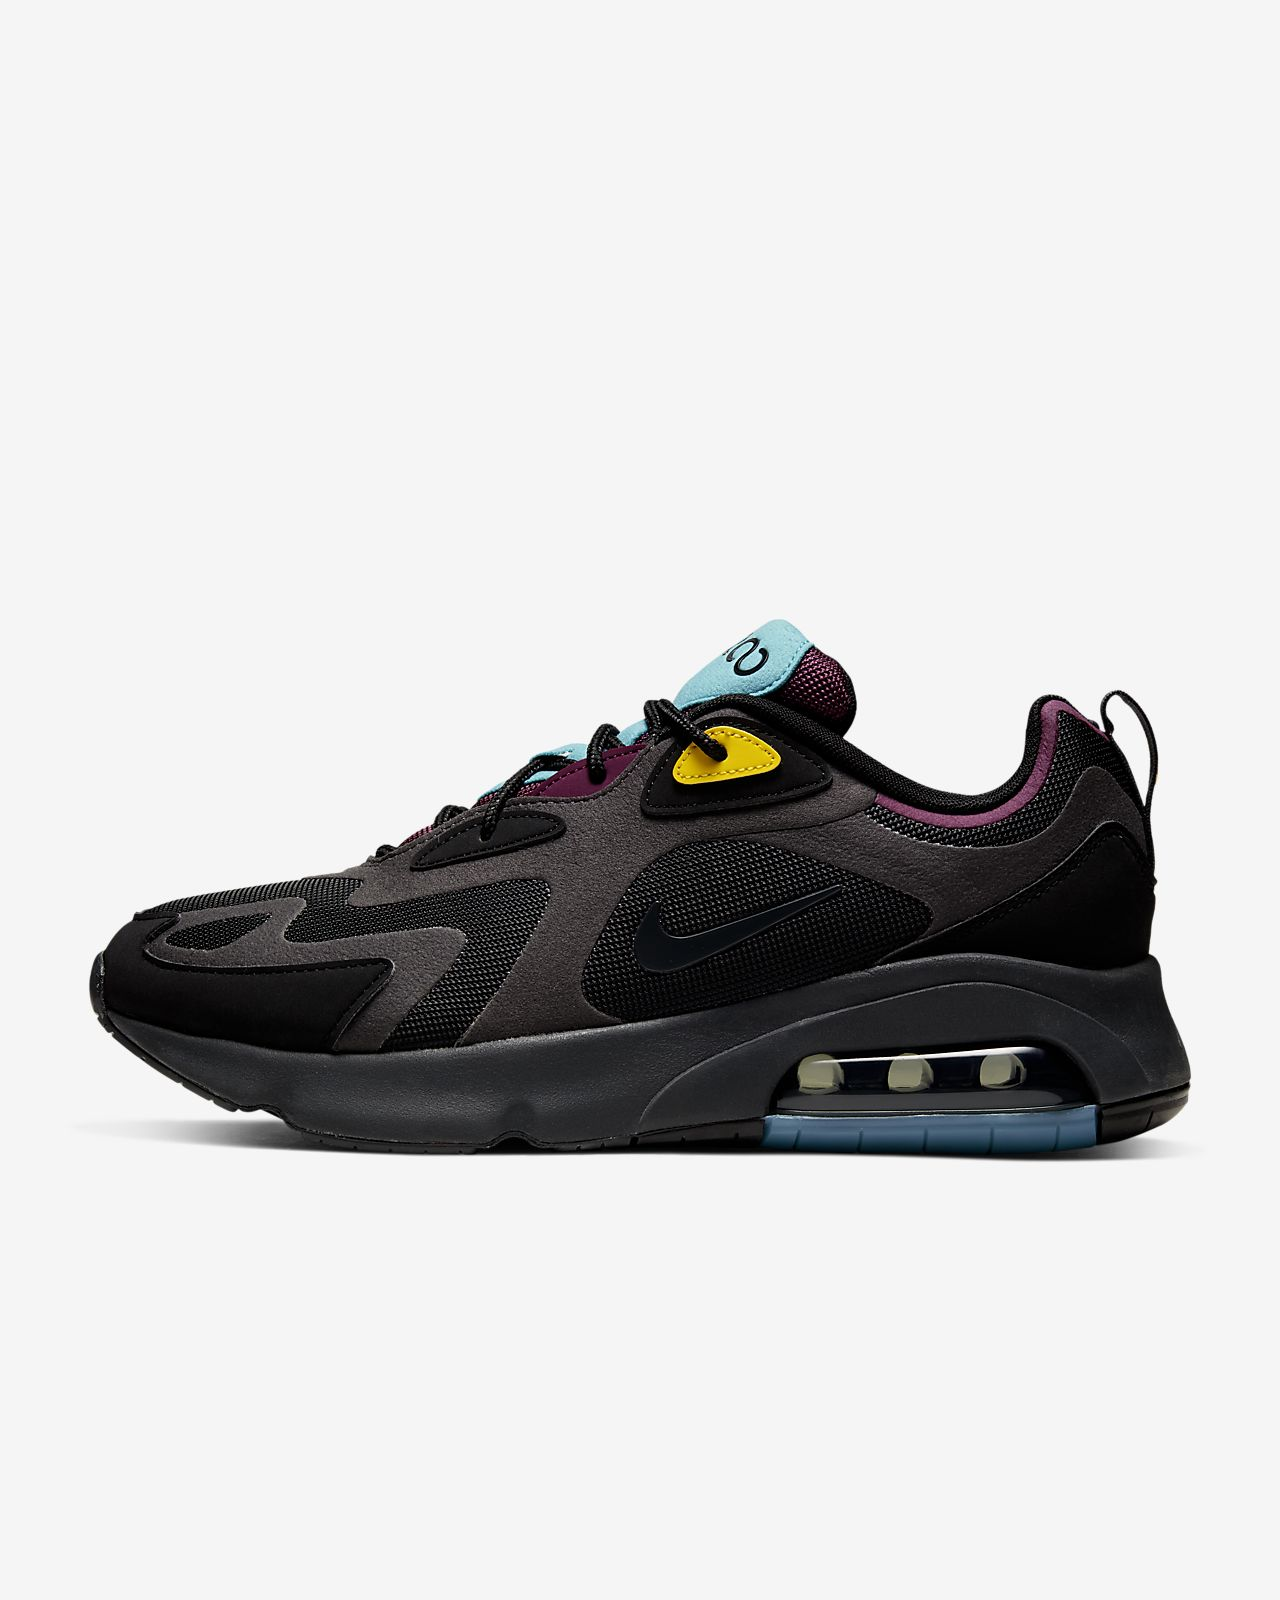 los angeles new release promo codes Chaussure Nike Air Max 200 (Dream Team) pour Homme. Nike LU